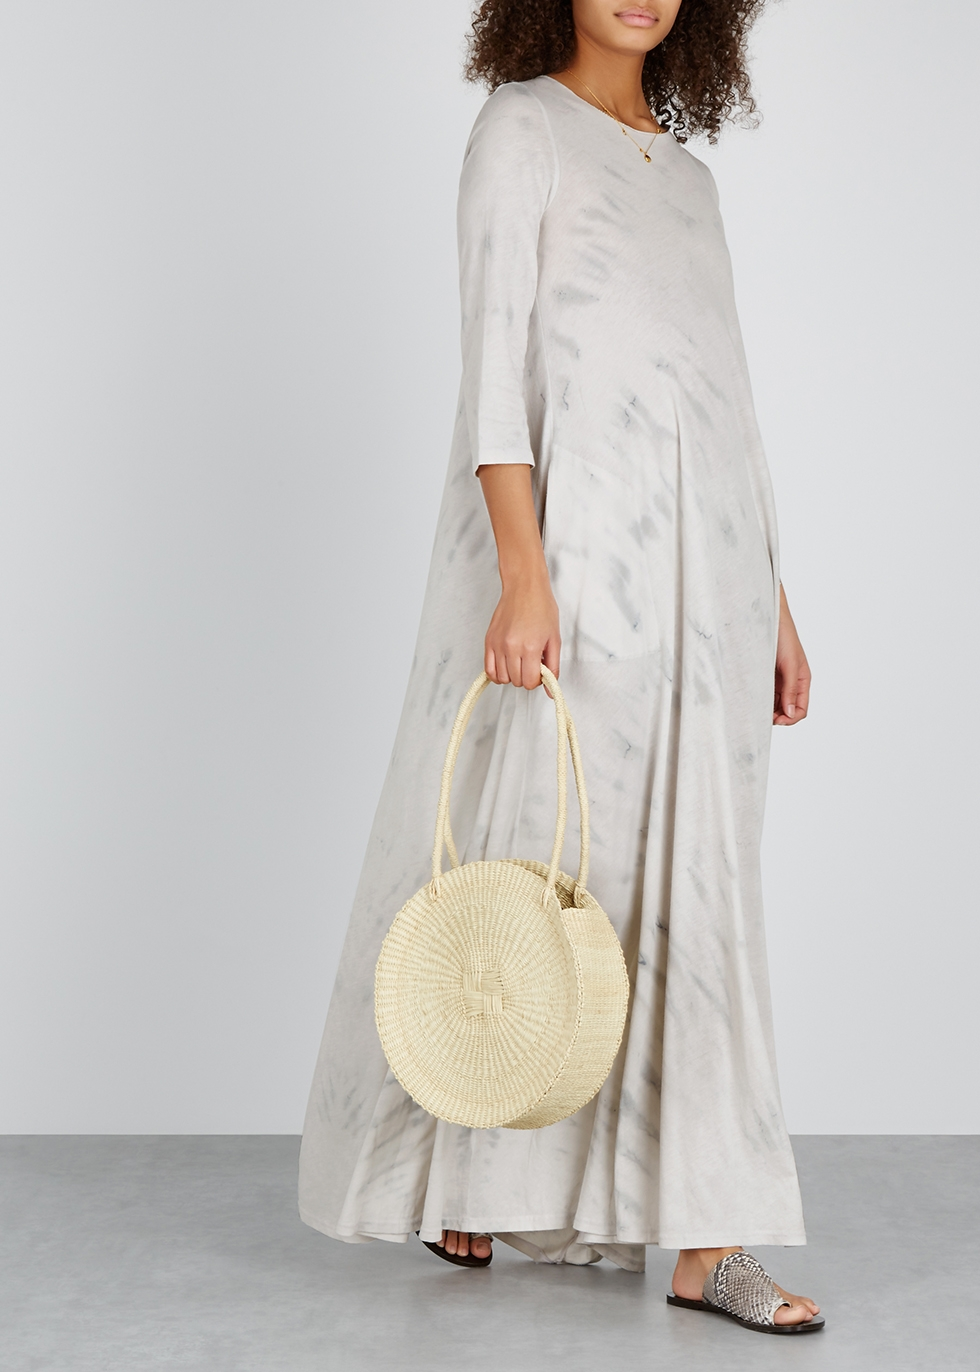 Light grey tie-dye jersey maxi dress - RAQUEL ALLEGRA